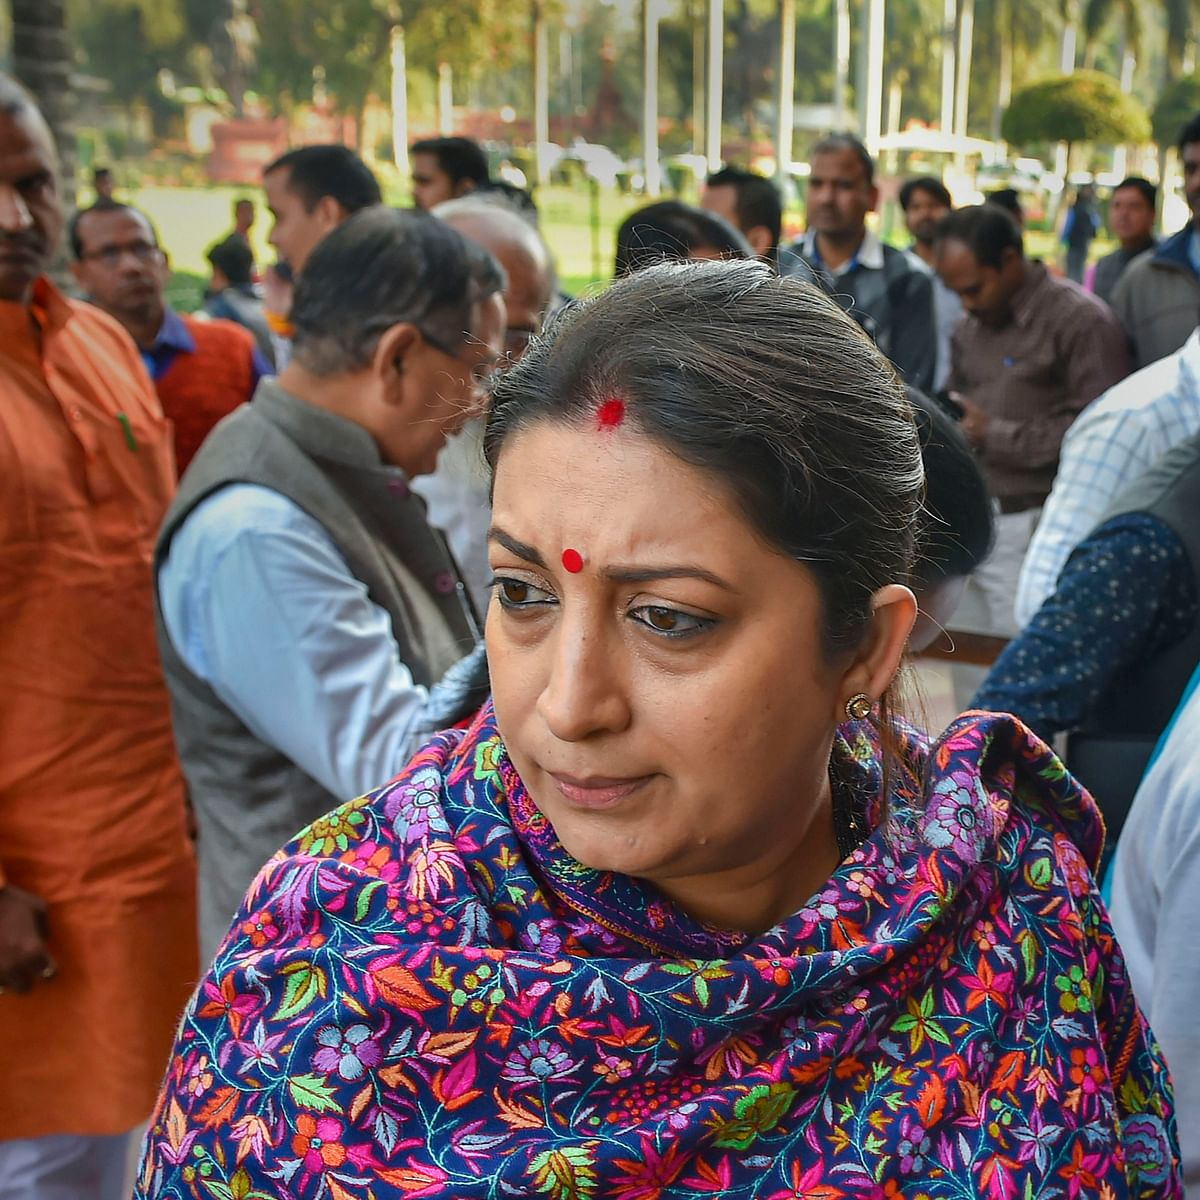 BJP seeks apology from Congress for 'threatening behaviour' against Smriti Irani in LS